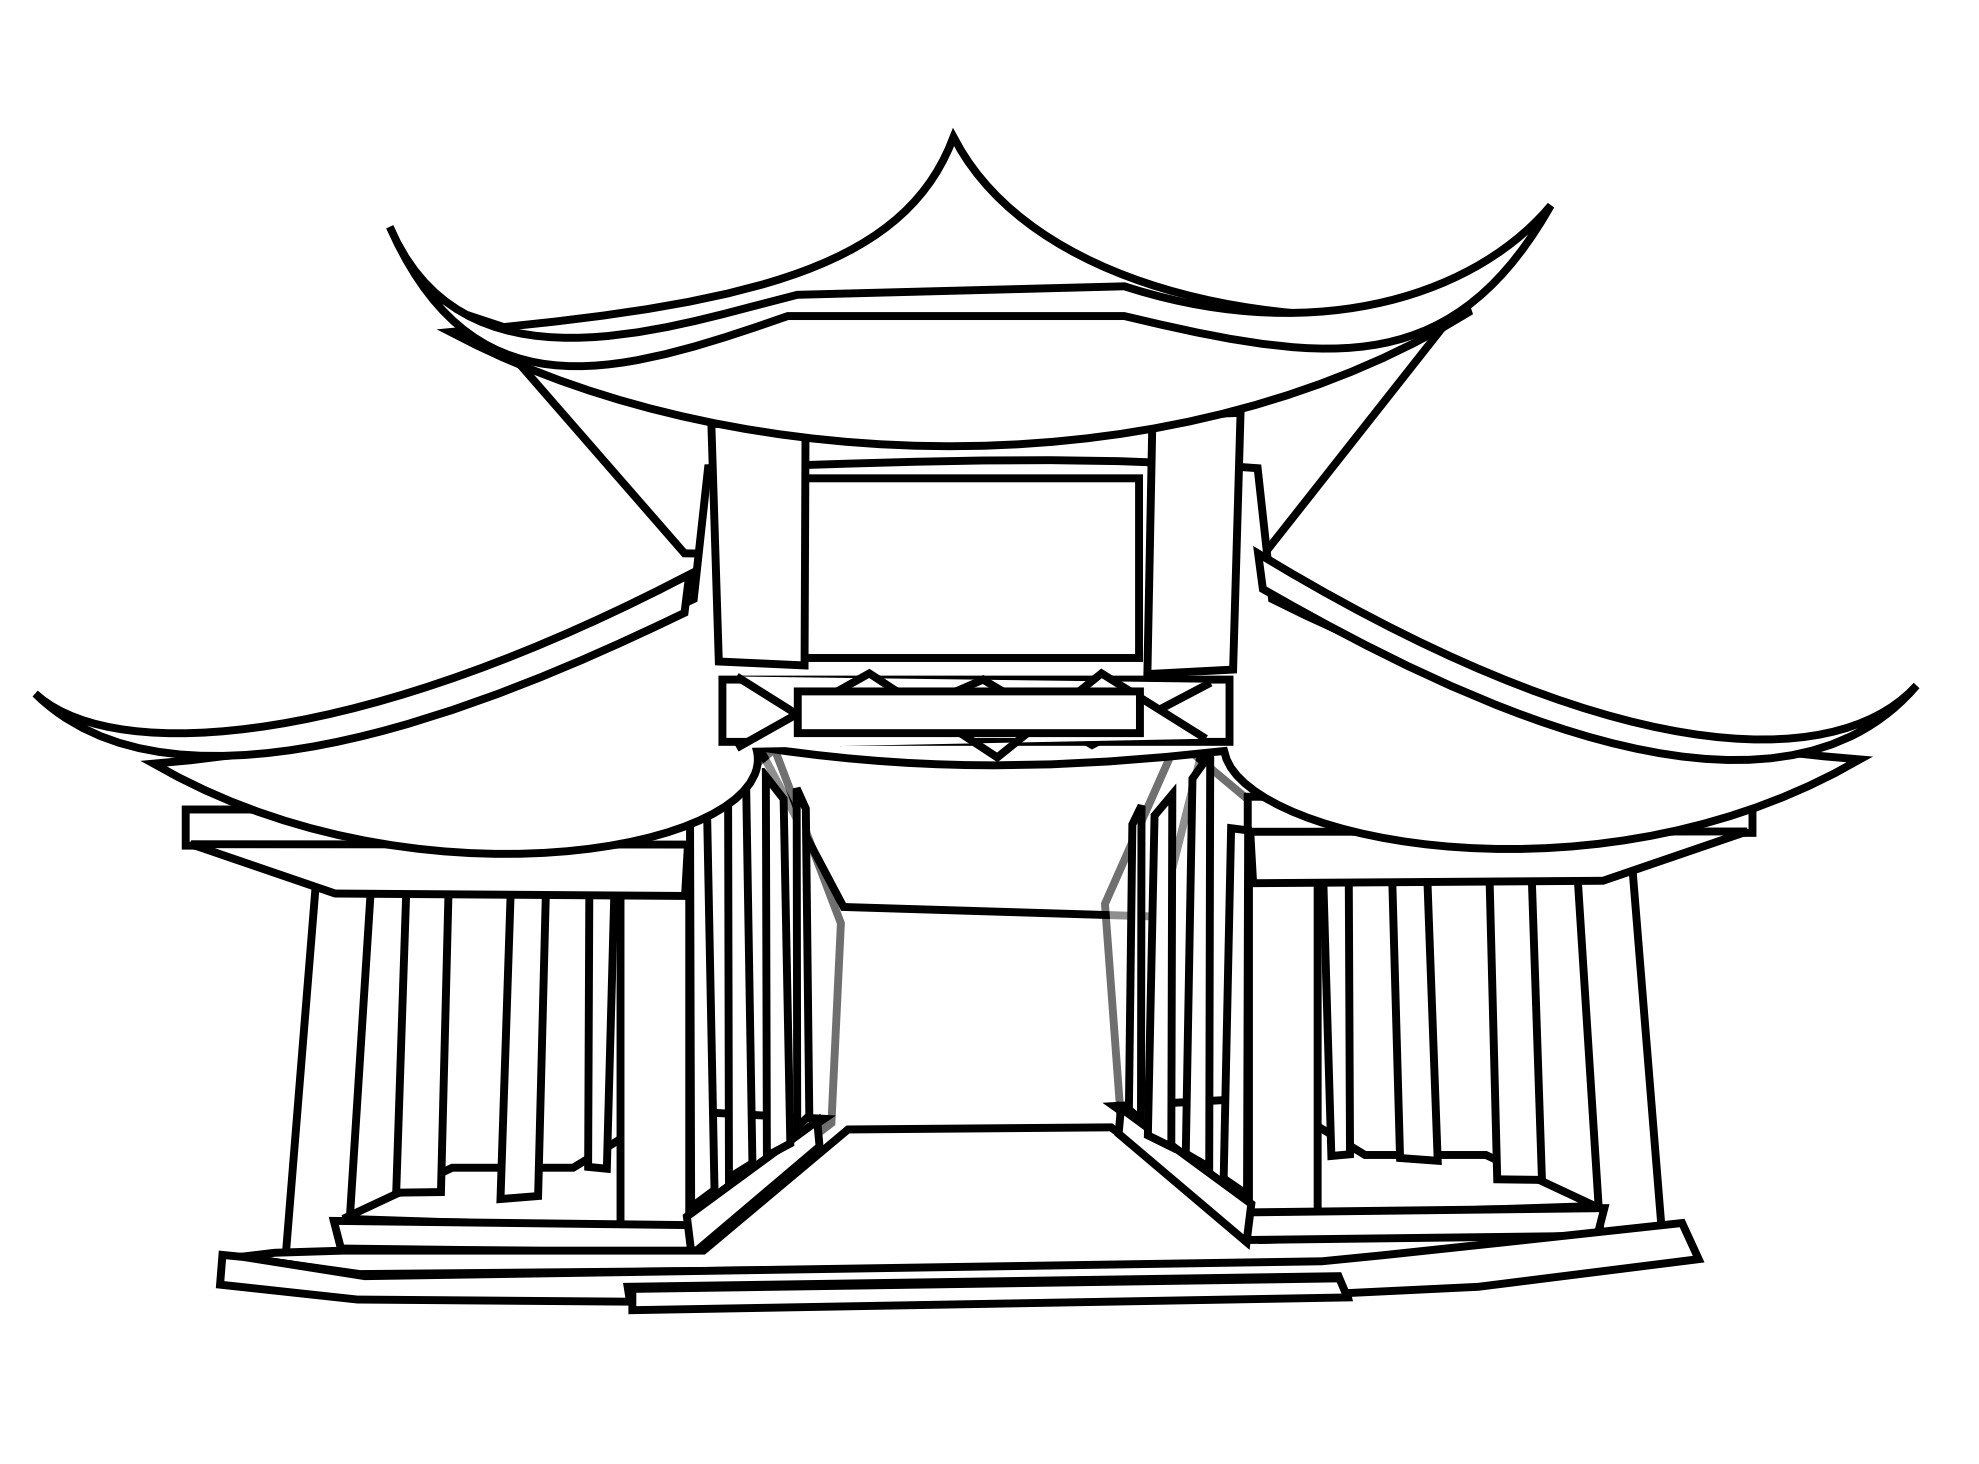 Chinese building clipart black white.